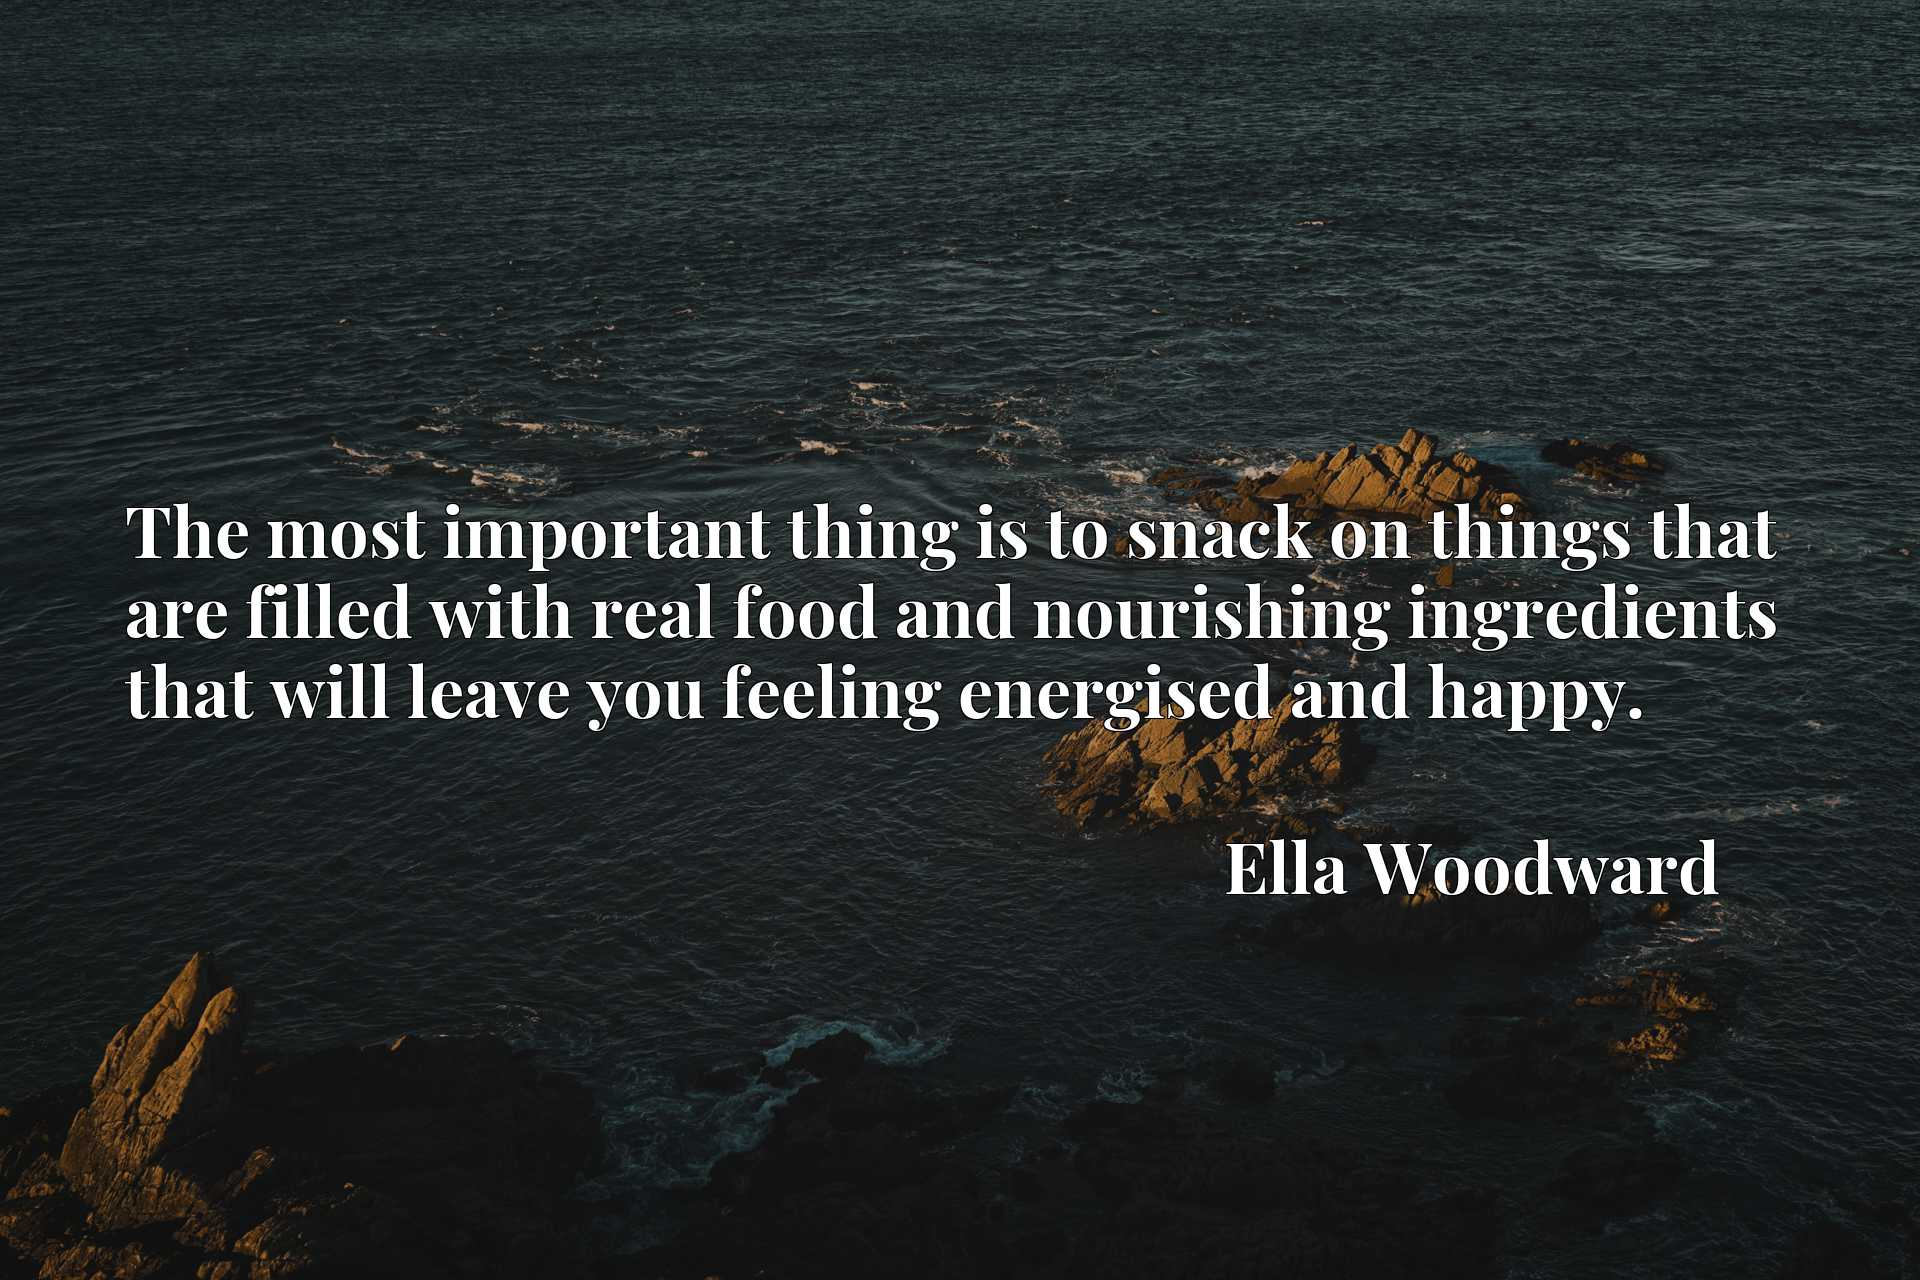 The most important thing is to snack on things that are filled with real food and nourishing ingredients that will leave you feeling energised and happy.